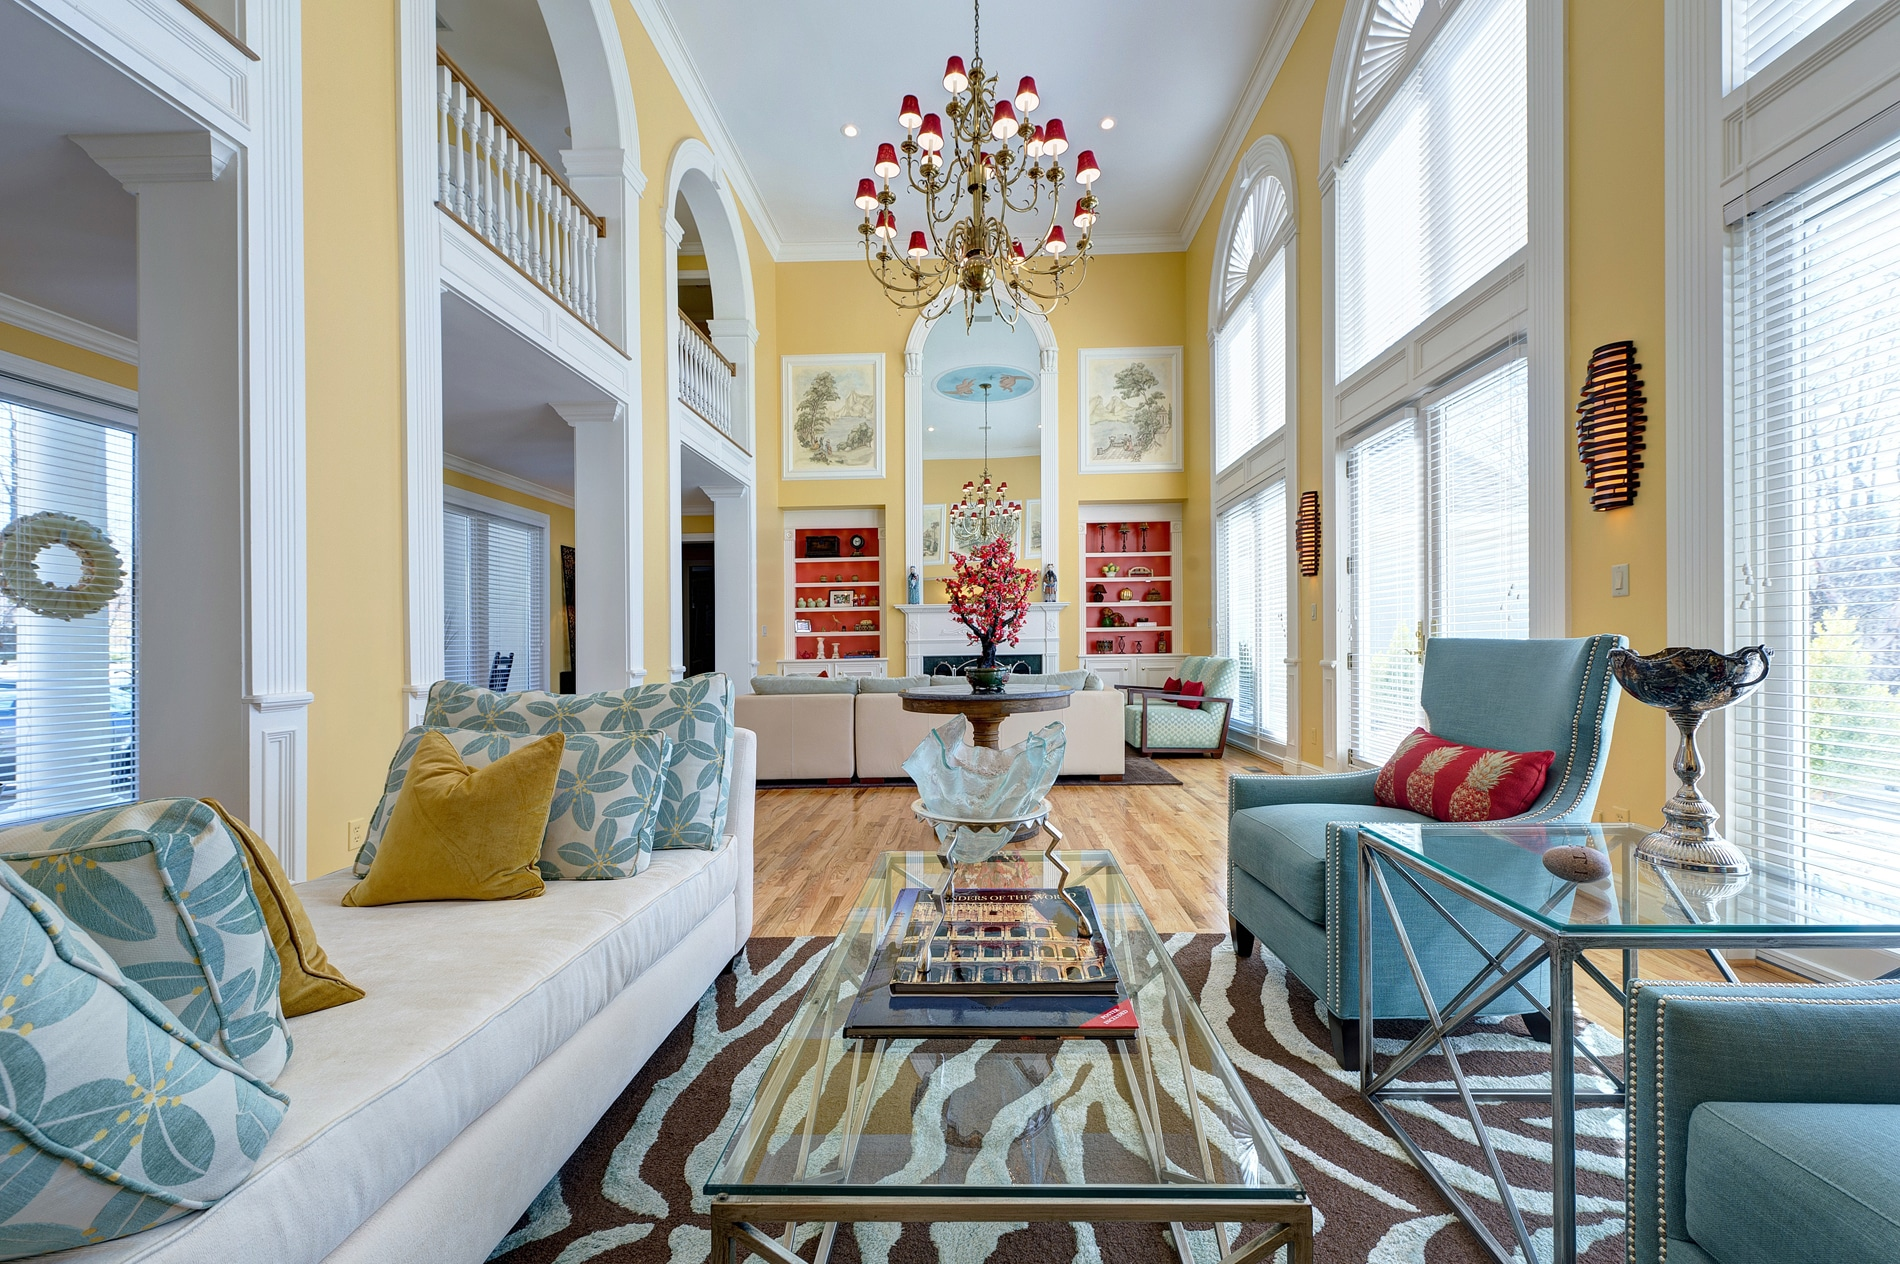 Asian interior design in frontenac st louis by s k interiors for St louis interior designers